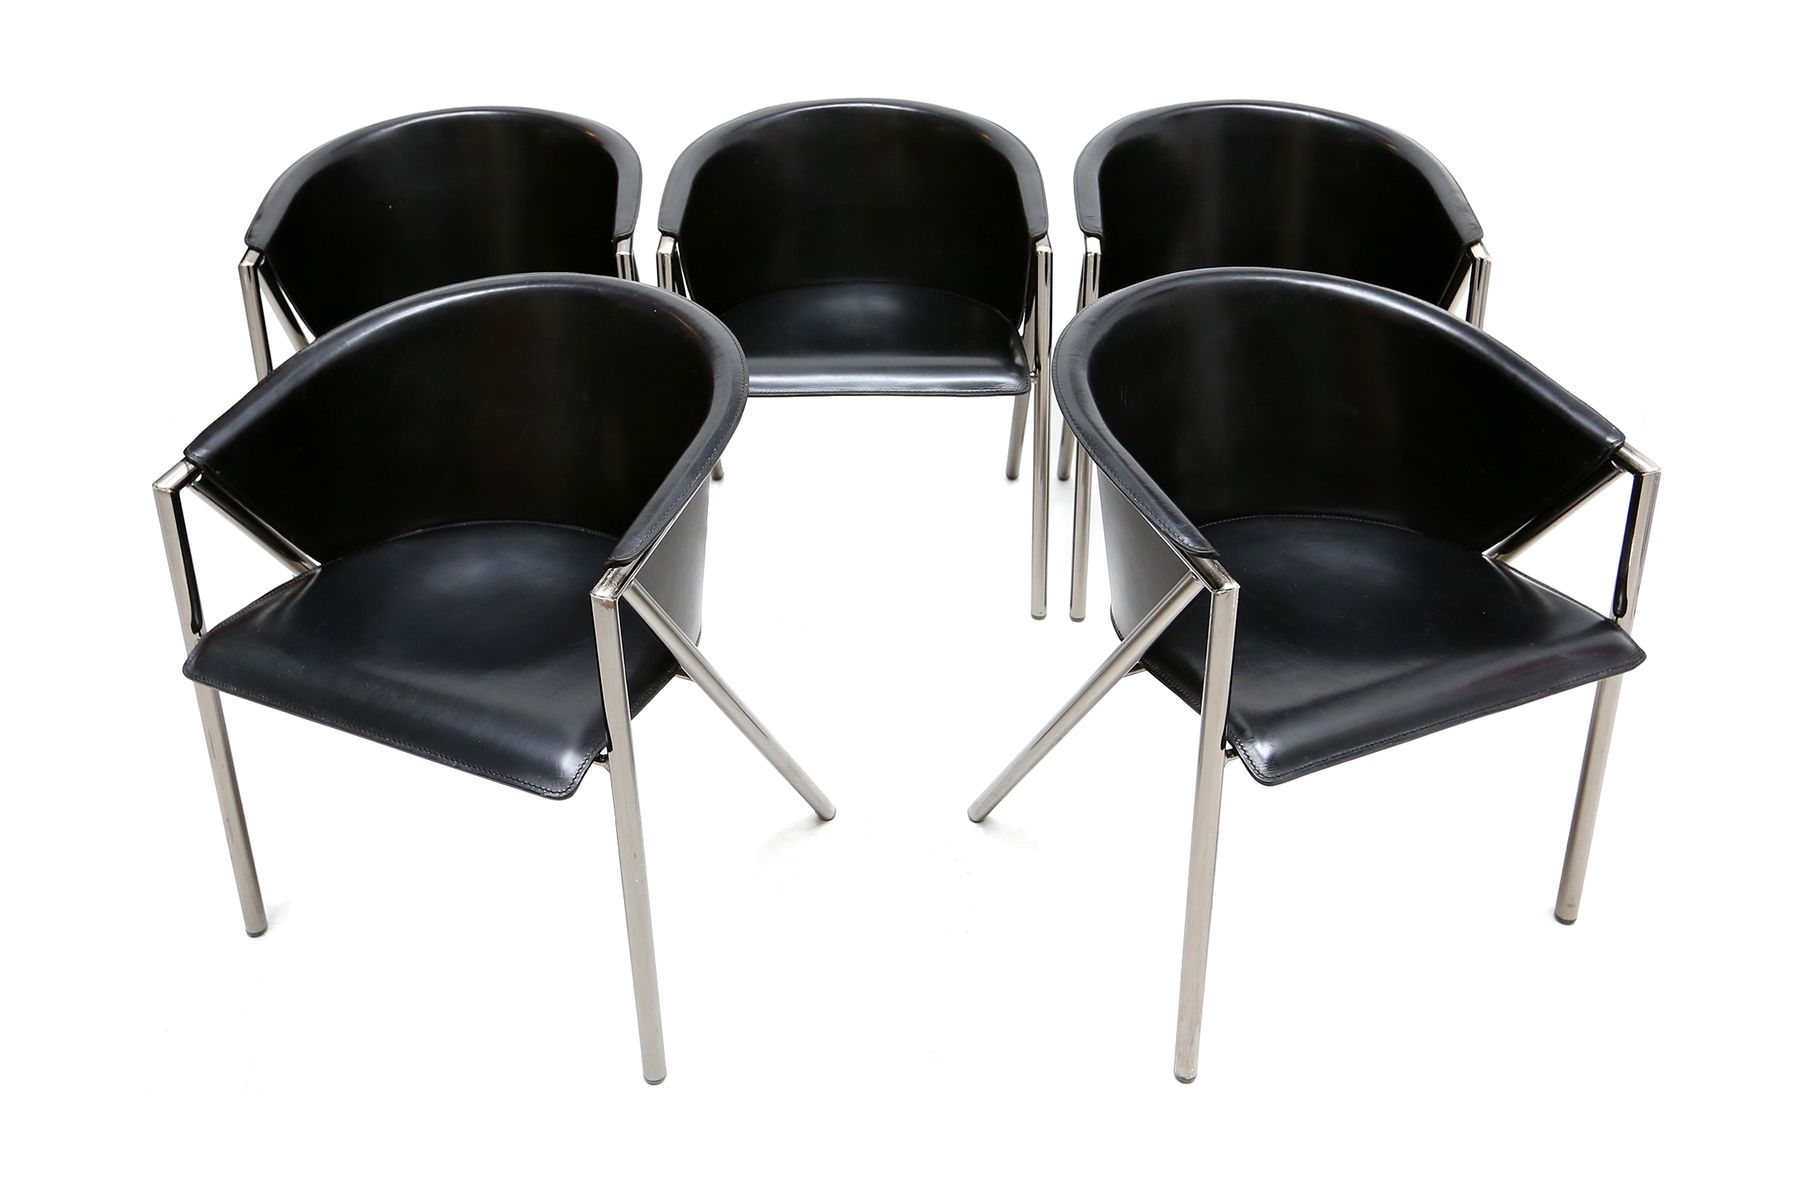 Black saddle leather chairs 1980s set of 5 for sale at for 1980s chair